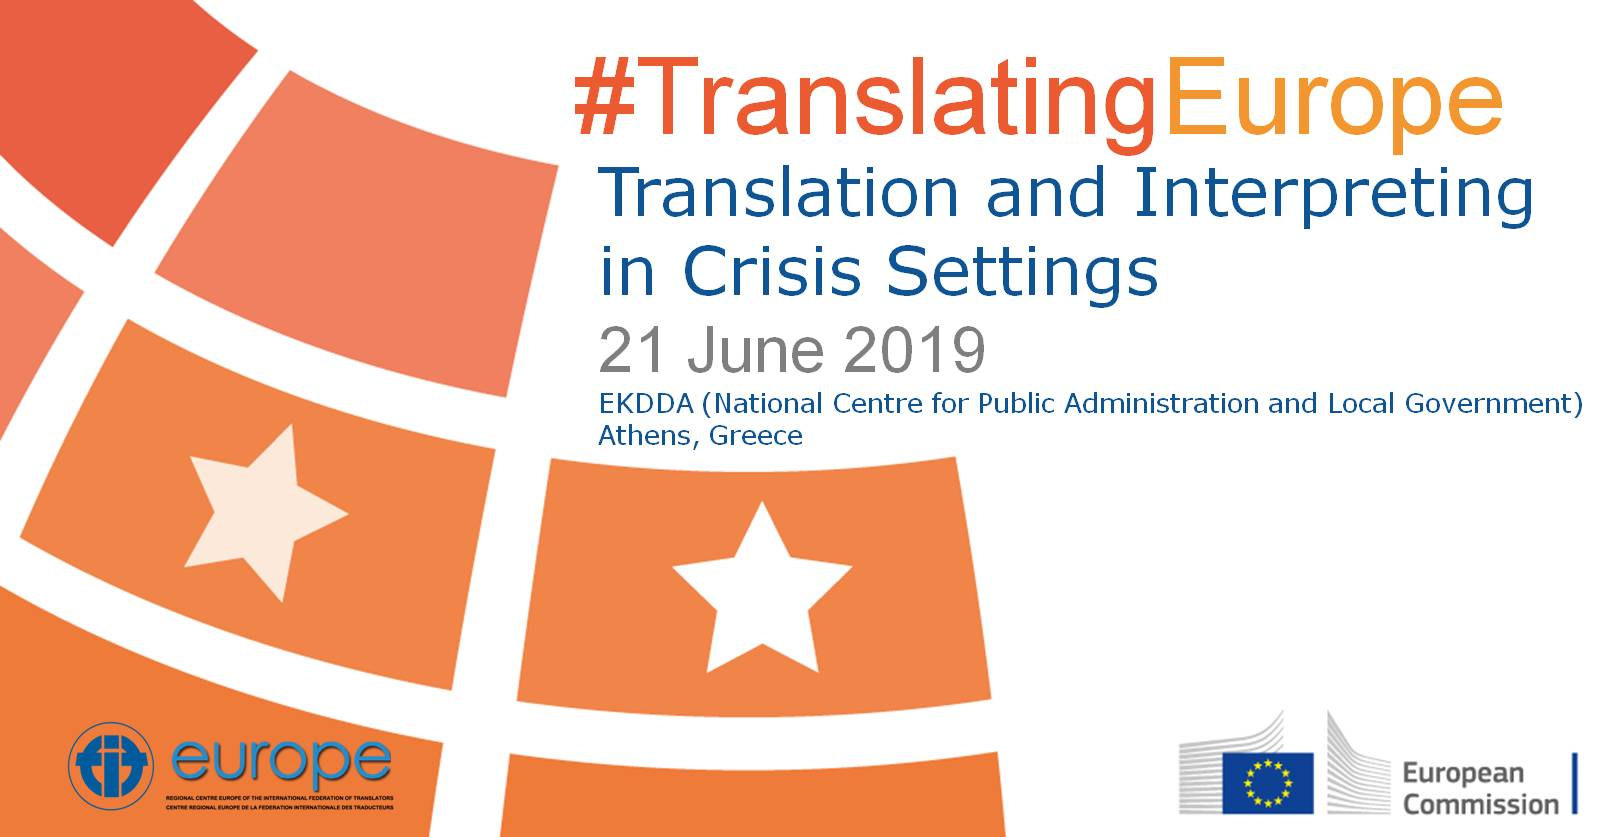 Translation and Interpreting in Crisis Settings